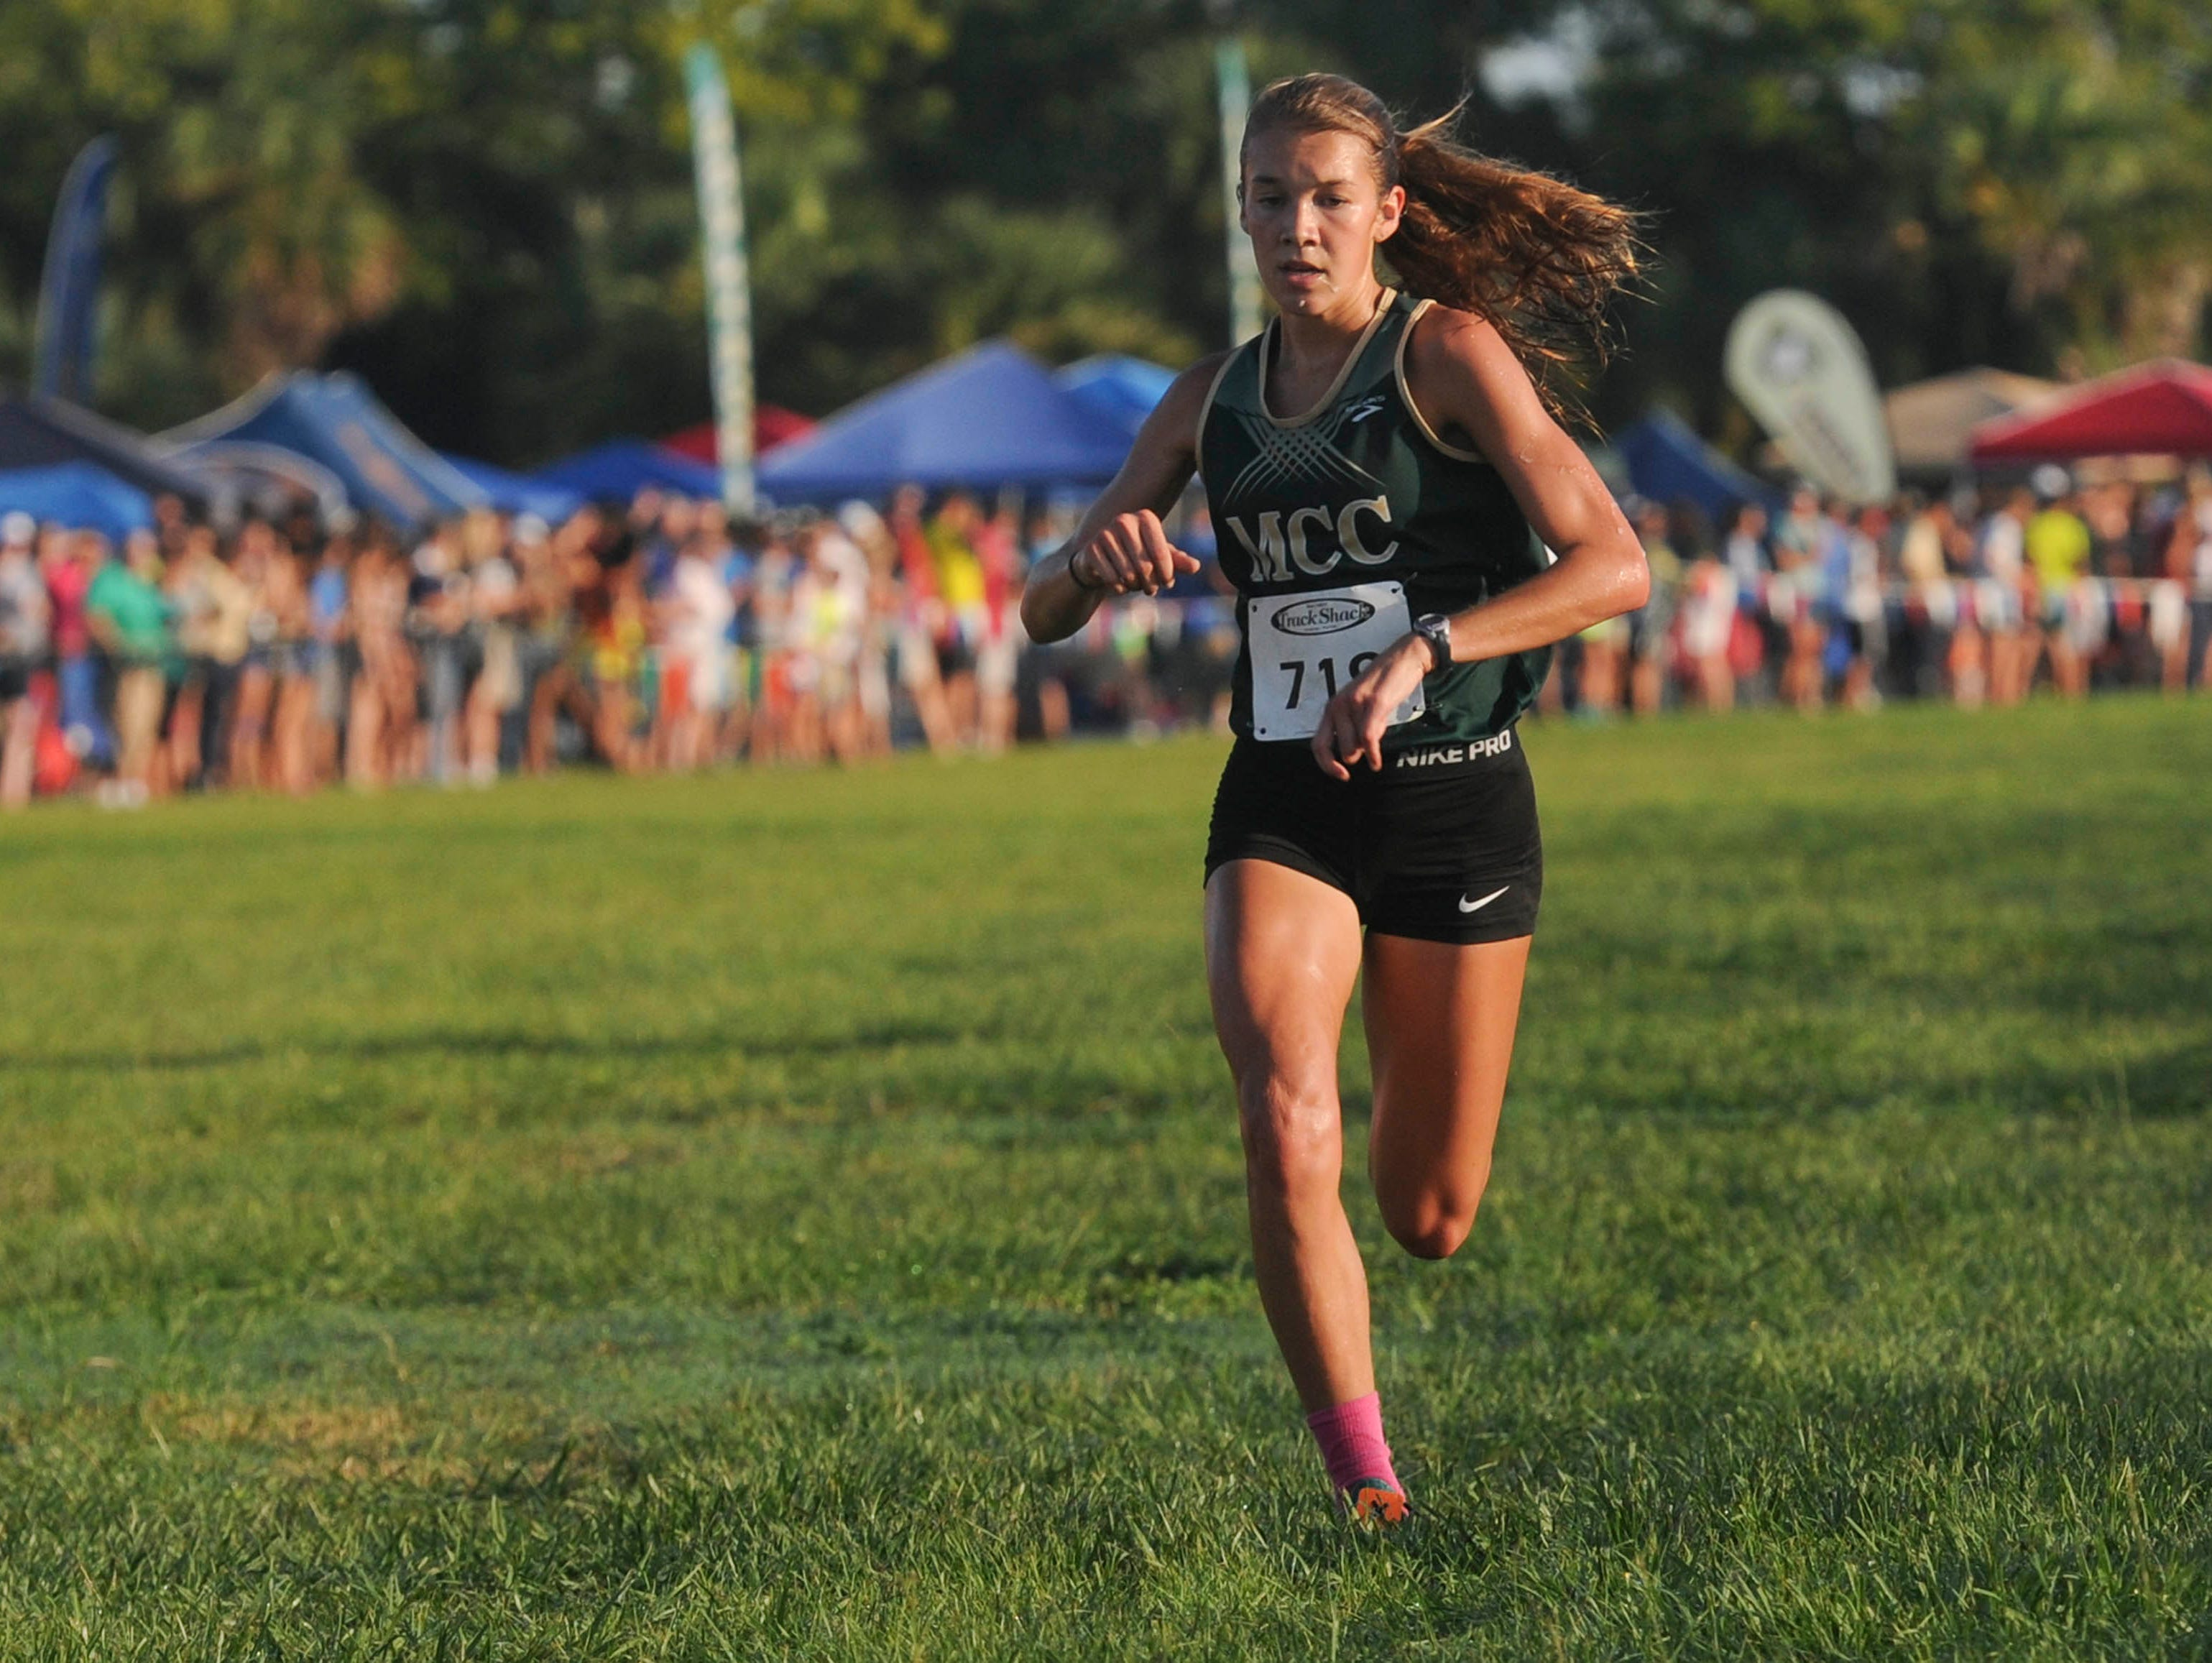 Amanda Beach of Melbourne Central Catholic, pictured running early in the 2016 cross country season, ran in San Diego in the Foot Locker National race on Saturday.